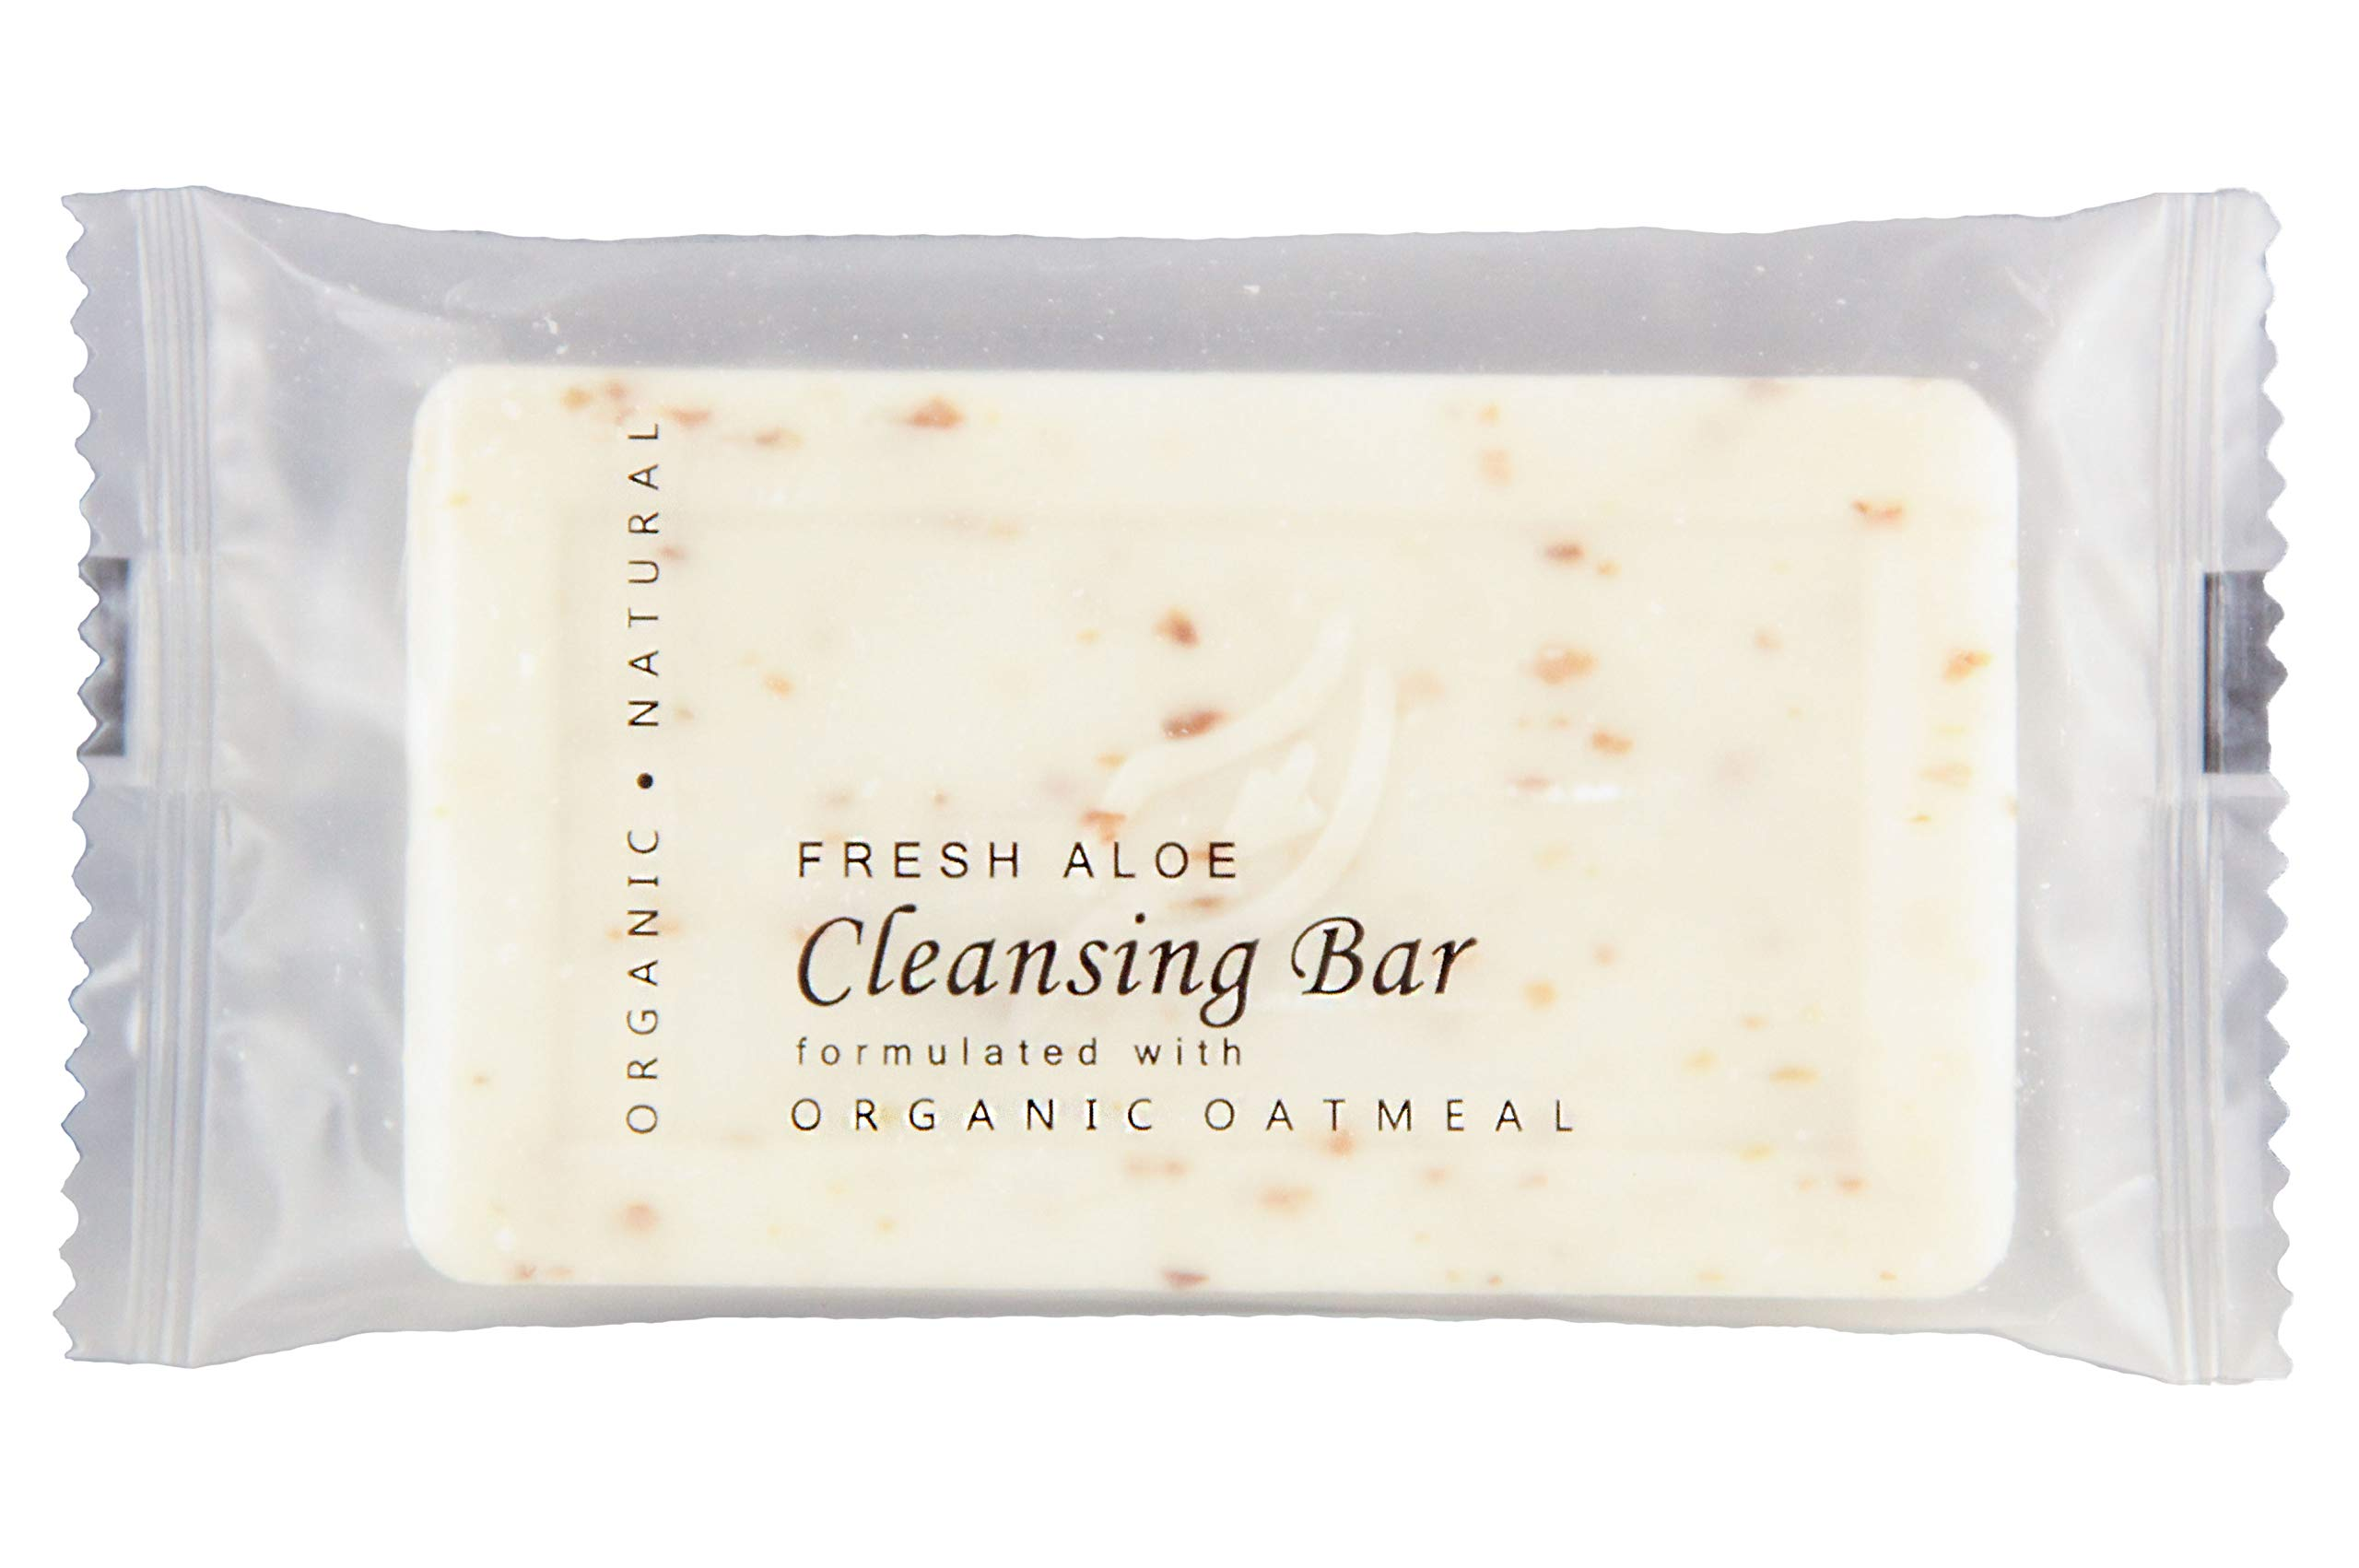 Oatmeal Cleansing Bar with Fresh Aloe, 1.25 oz. Hospitality Size Soap for Travel or Guest Bath (Case of 300)